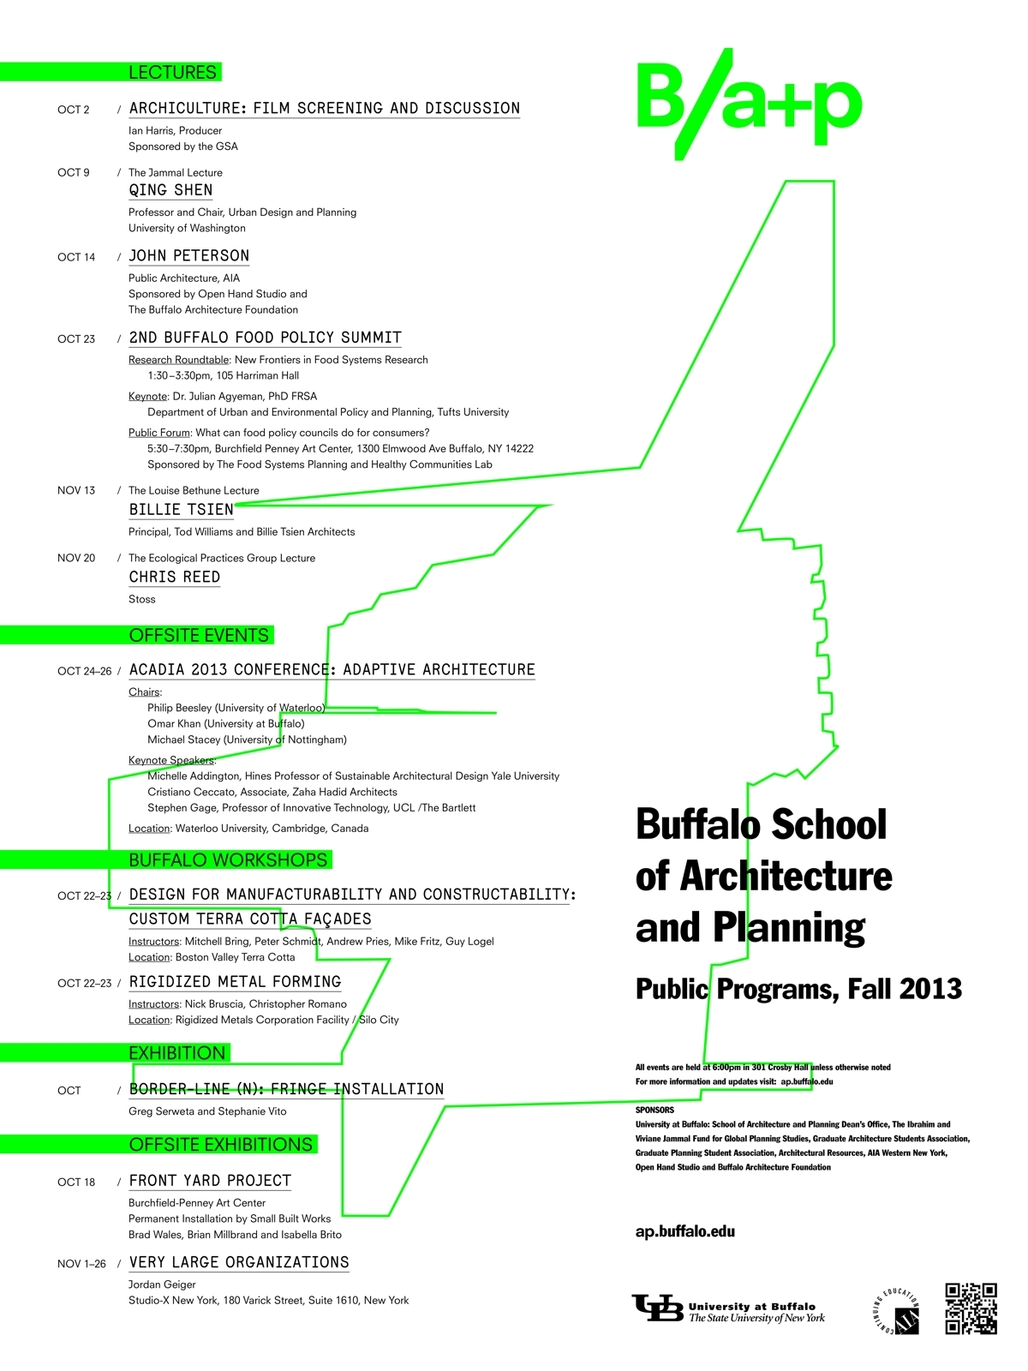 Poster for Fall 13 Public Programs at the University at Buffalo School of Architecture and Planning. Image courtesy of University at Buffalo.